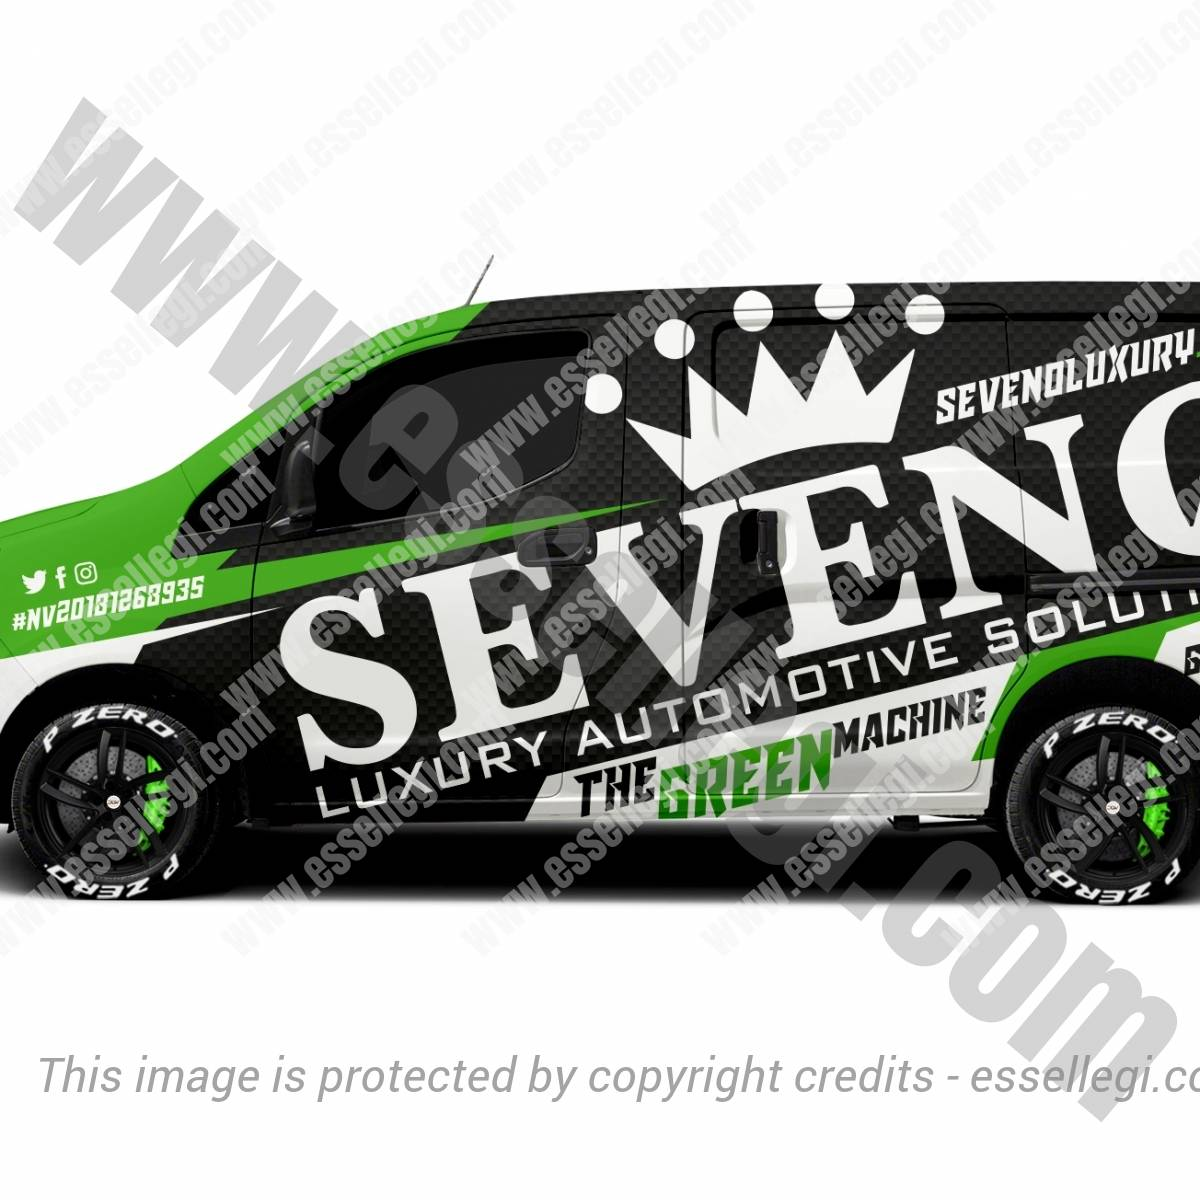 SEVENO LUXURY | VAN WRAP DESIGN 🇺🇸